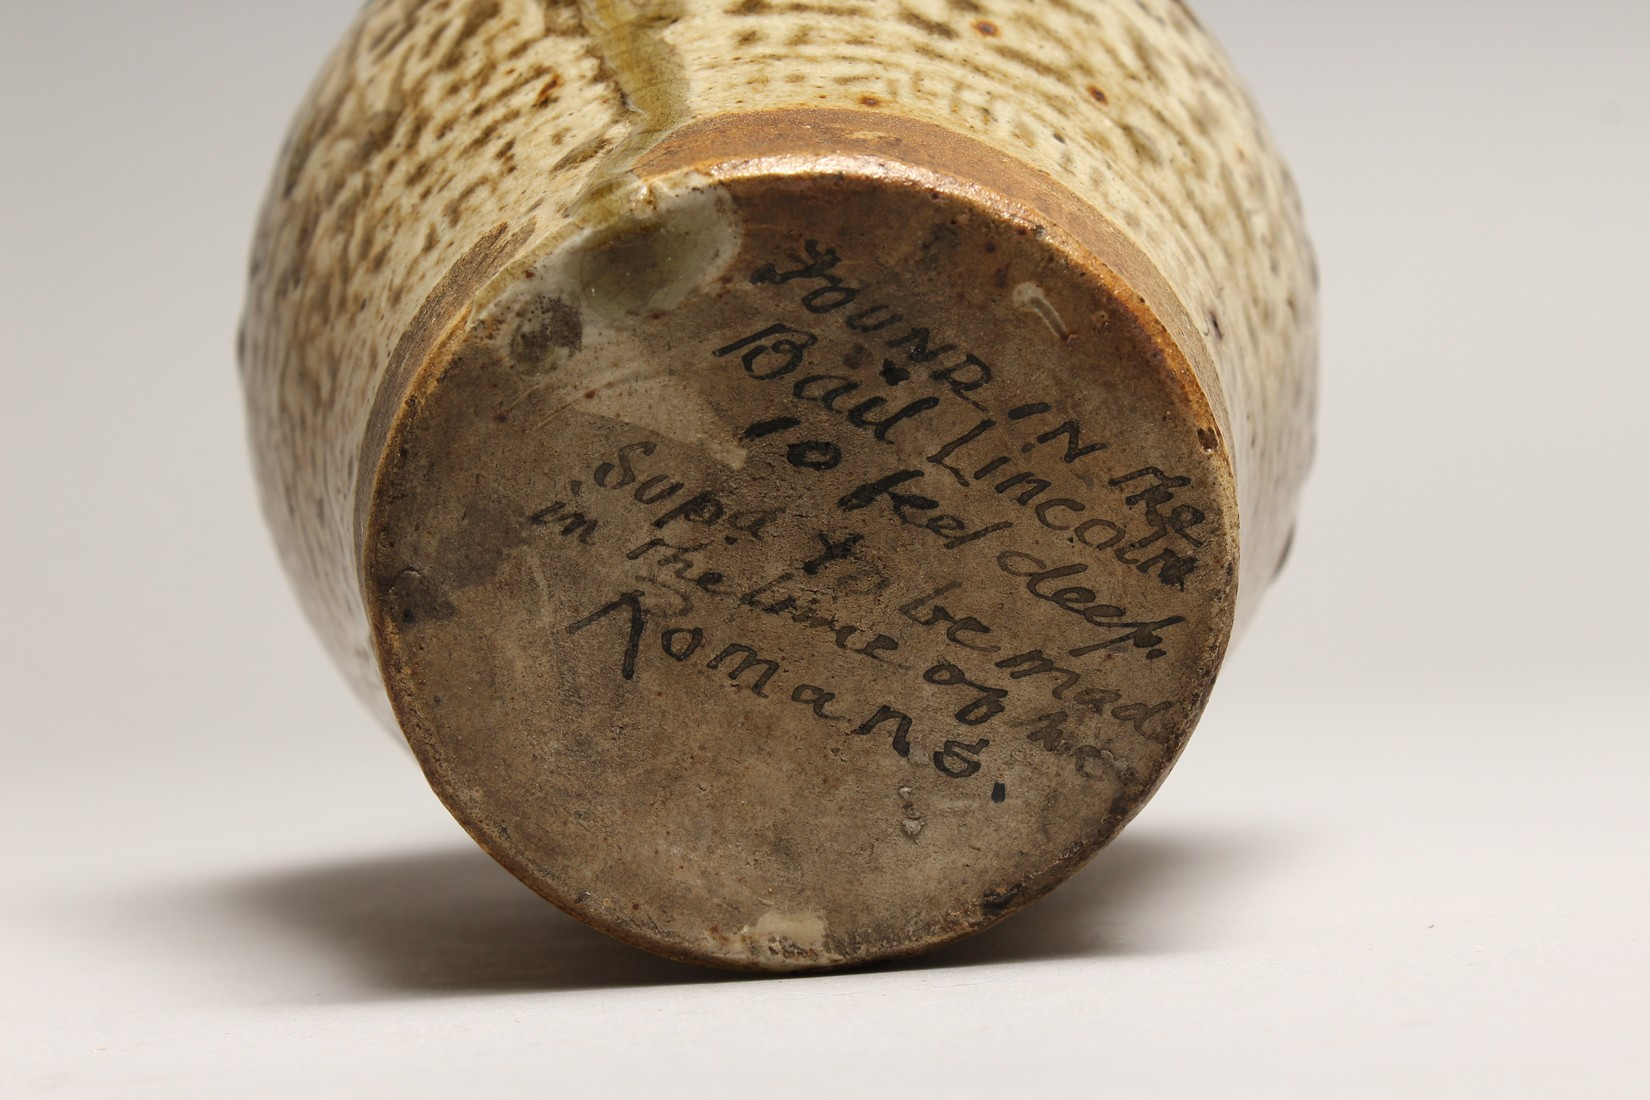 A ROMAN TYPE POTTERY JUG, See inscription on base 5.5ins high - Image 6 of 6